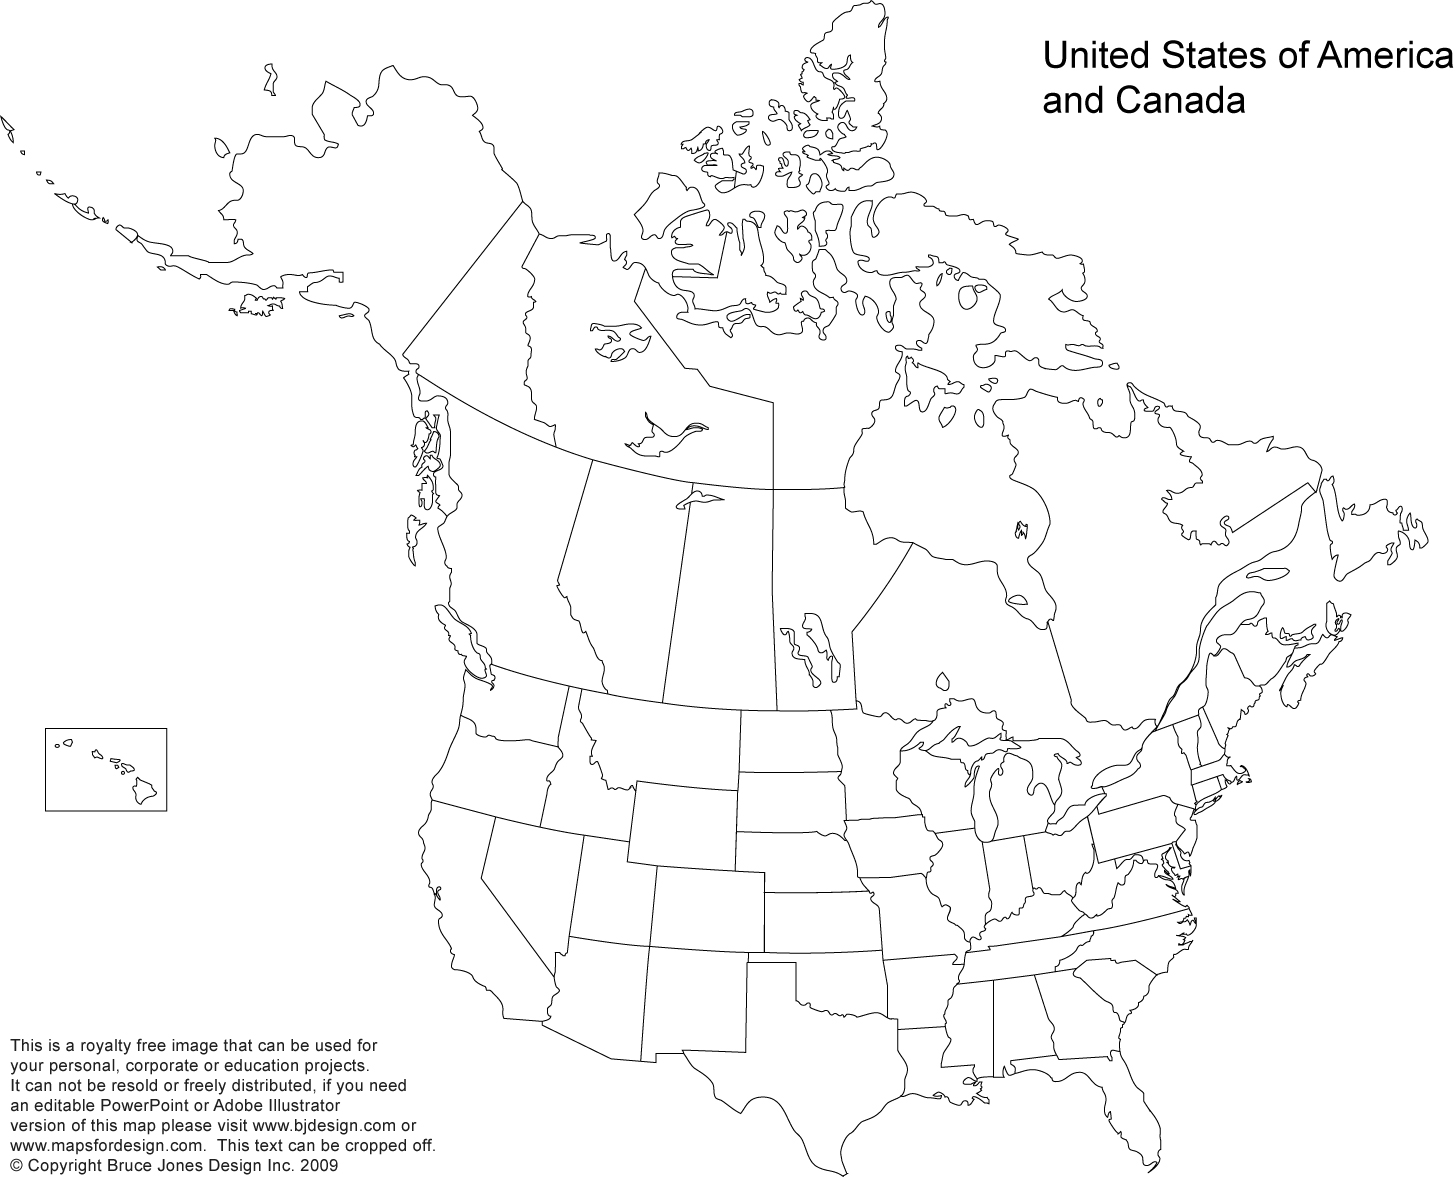 US and Canada printable blank outling map, no names, royalty free, jpg